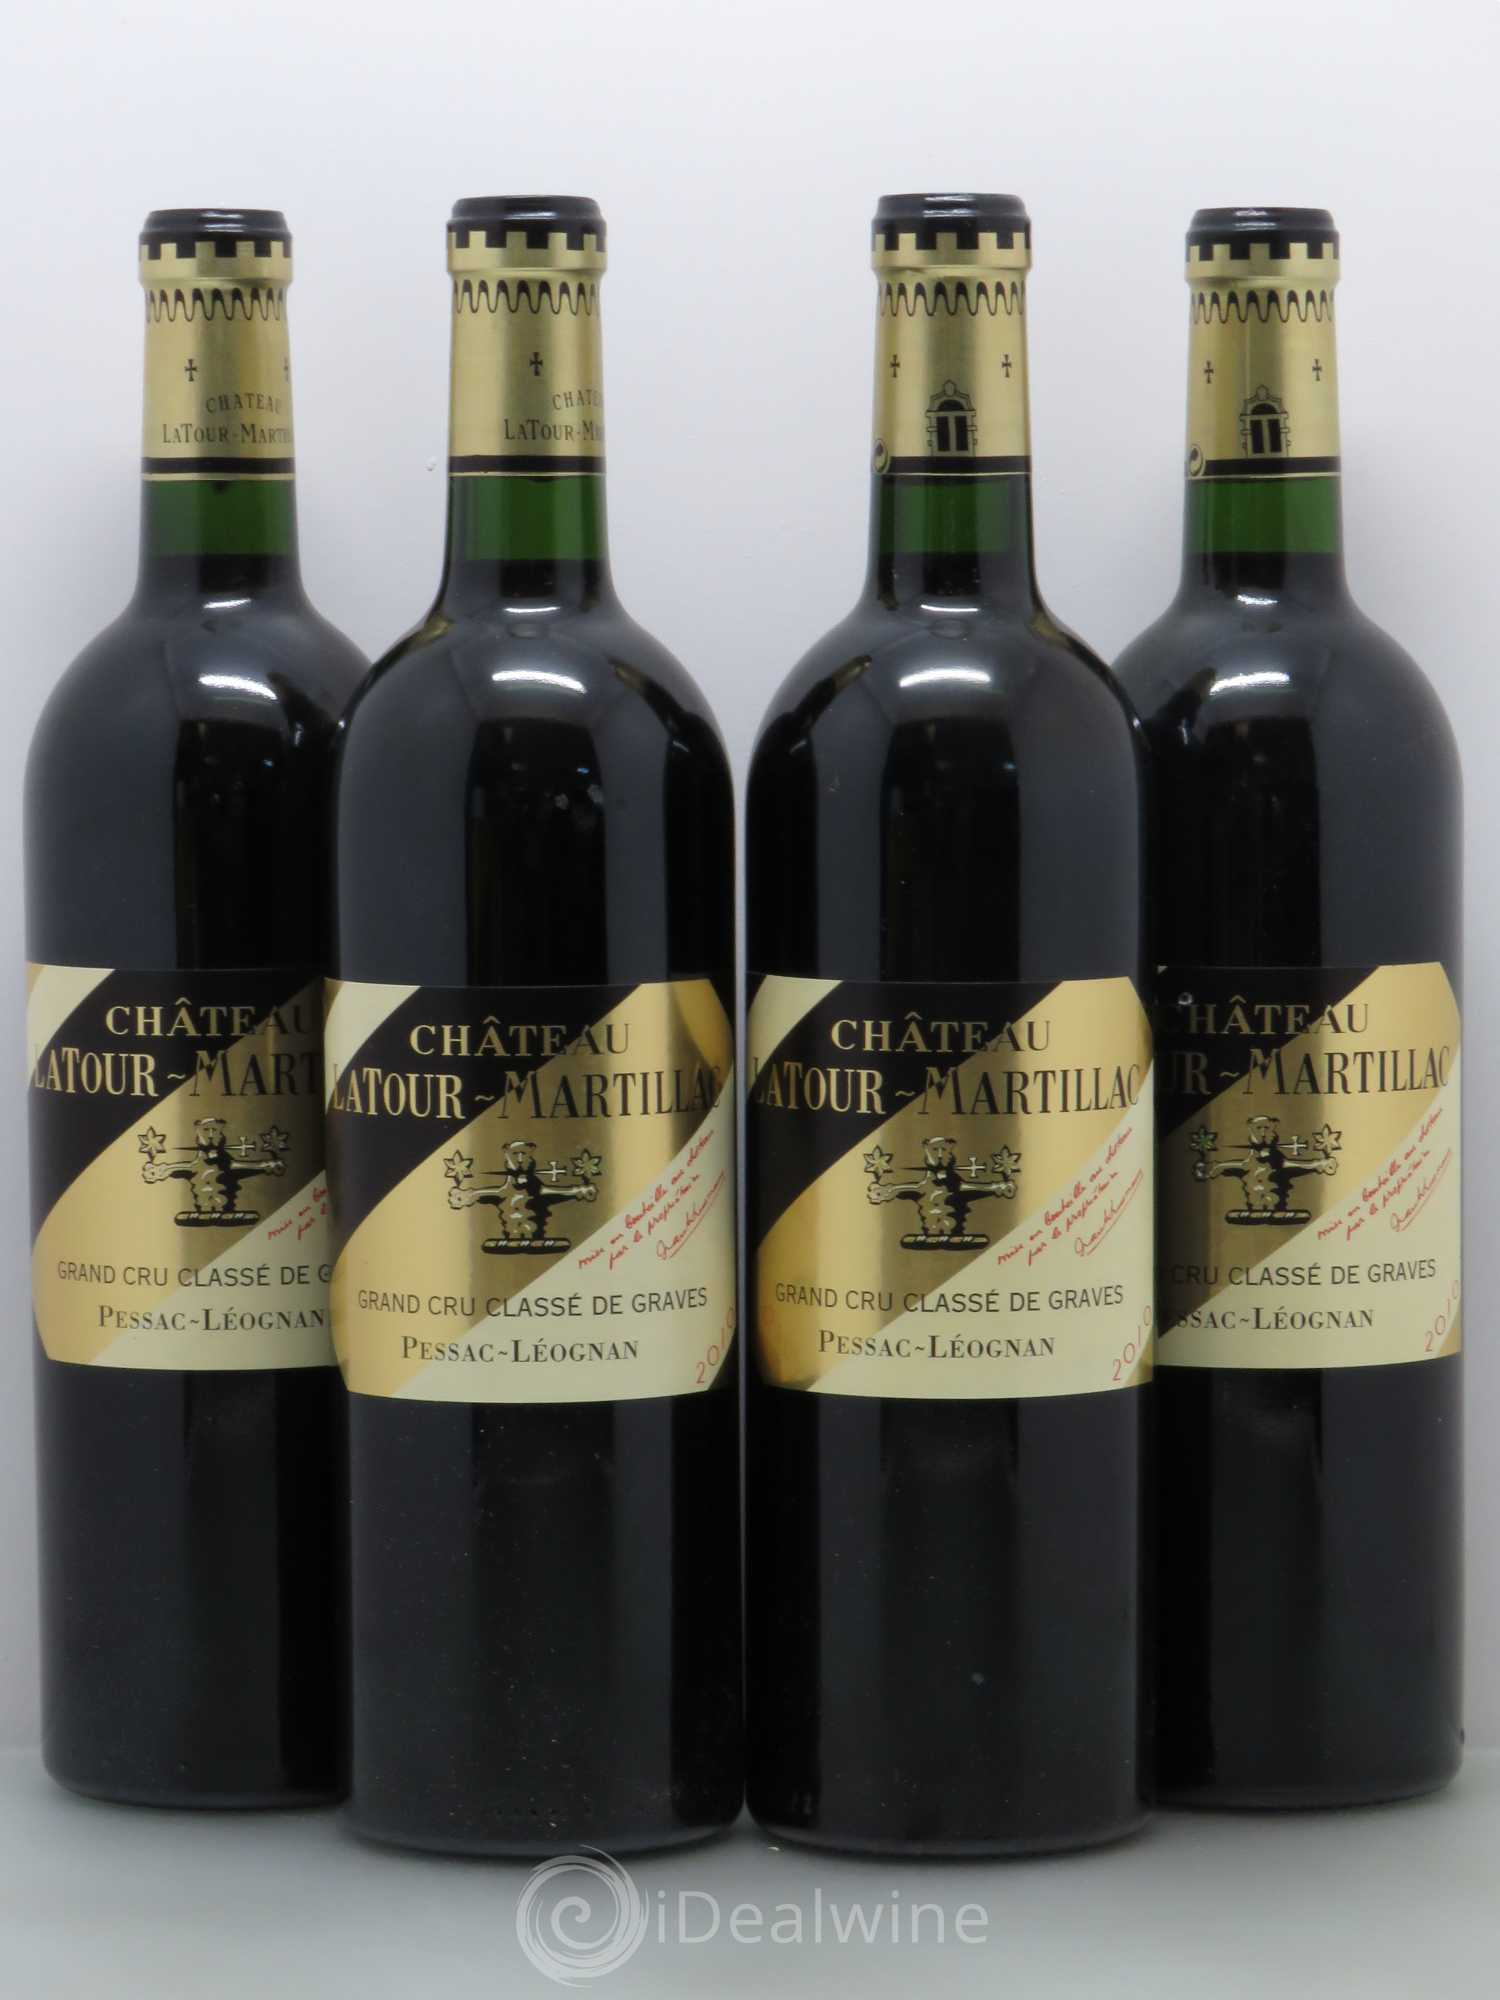 acheter ch teau latour martillac cru class de graves 2010 lot 14591. Black Bedroom Furniture Sets. Home Design Ideas